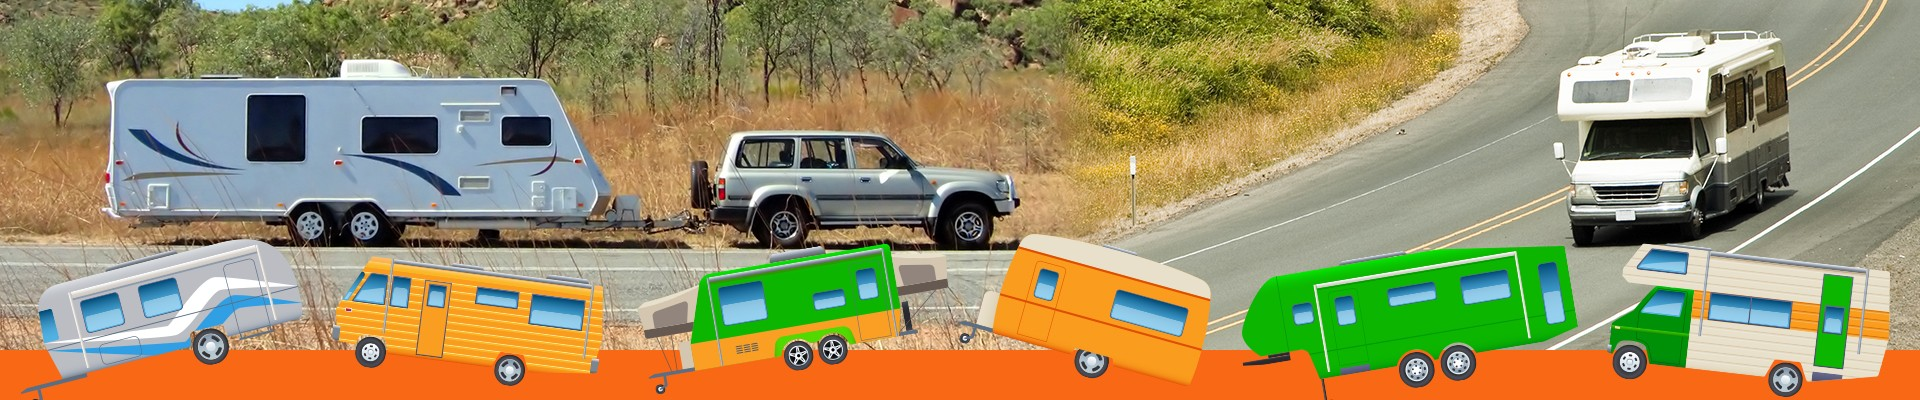 Motorhome and Jeep with a travel trailer RV on the road.